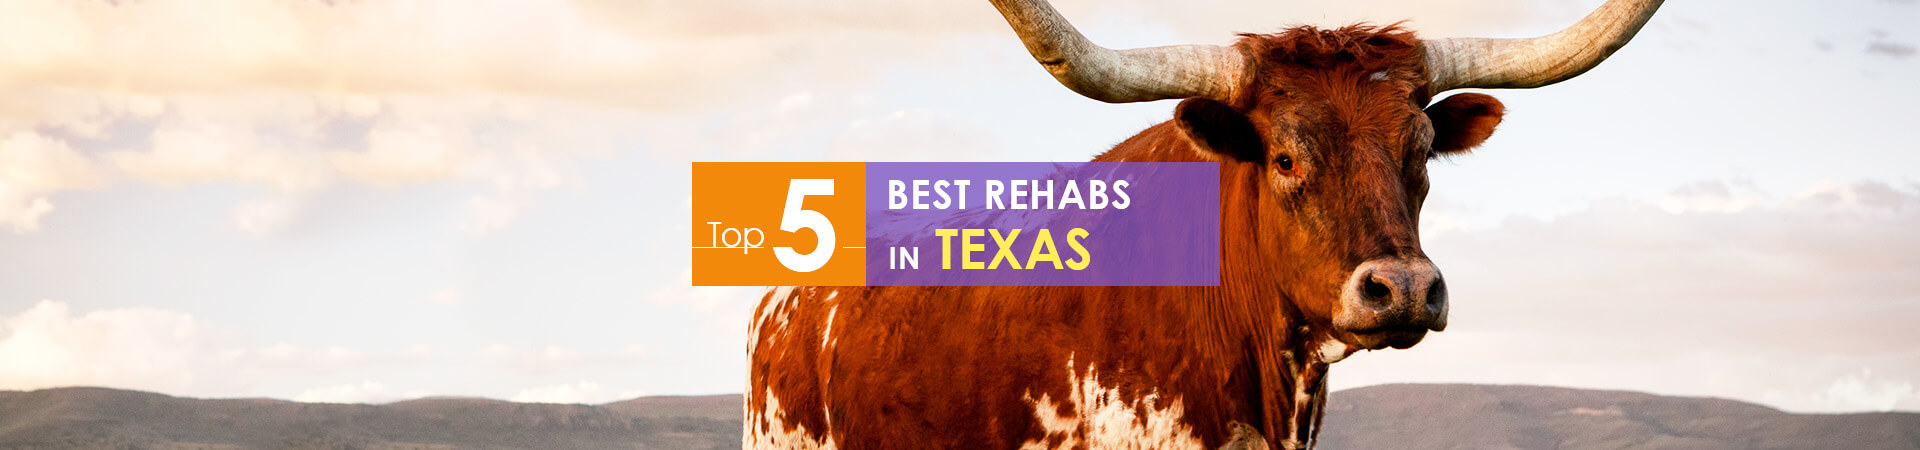 Texas longhorn and top 5 rehabs caption